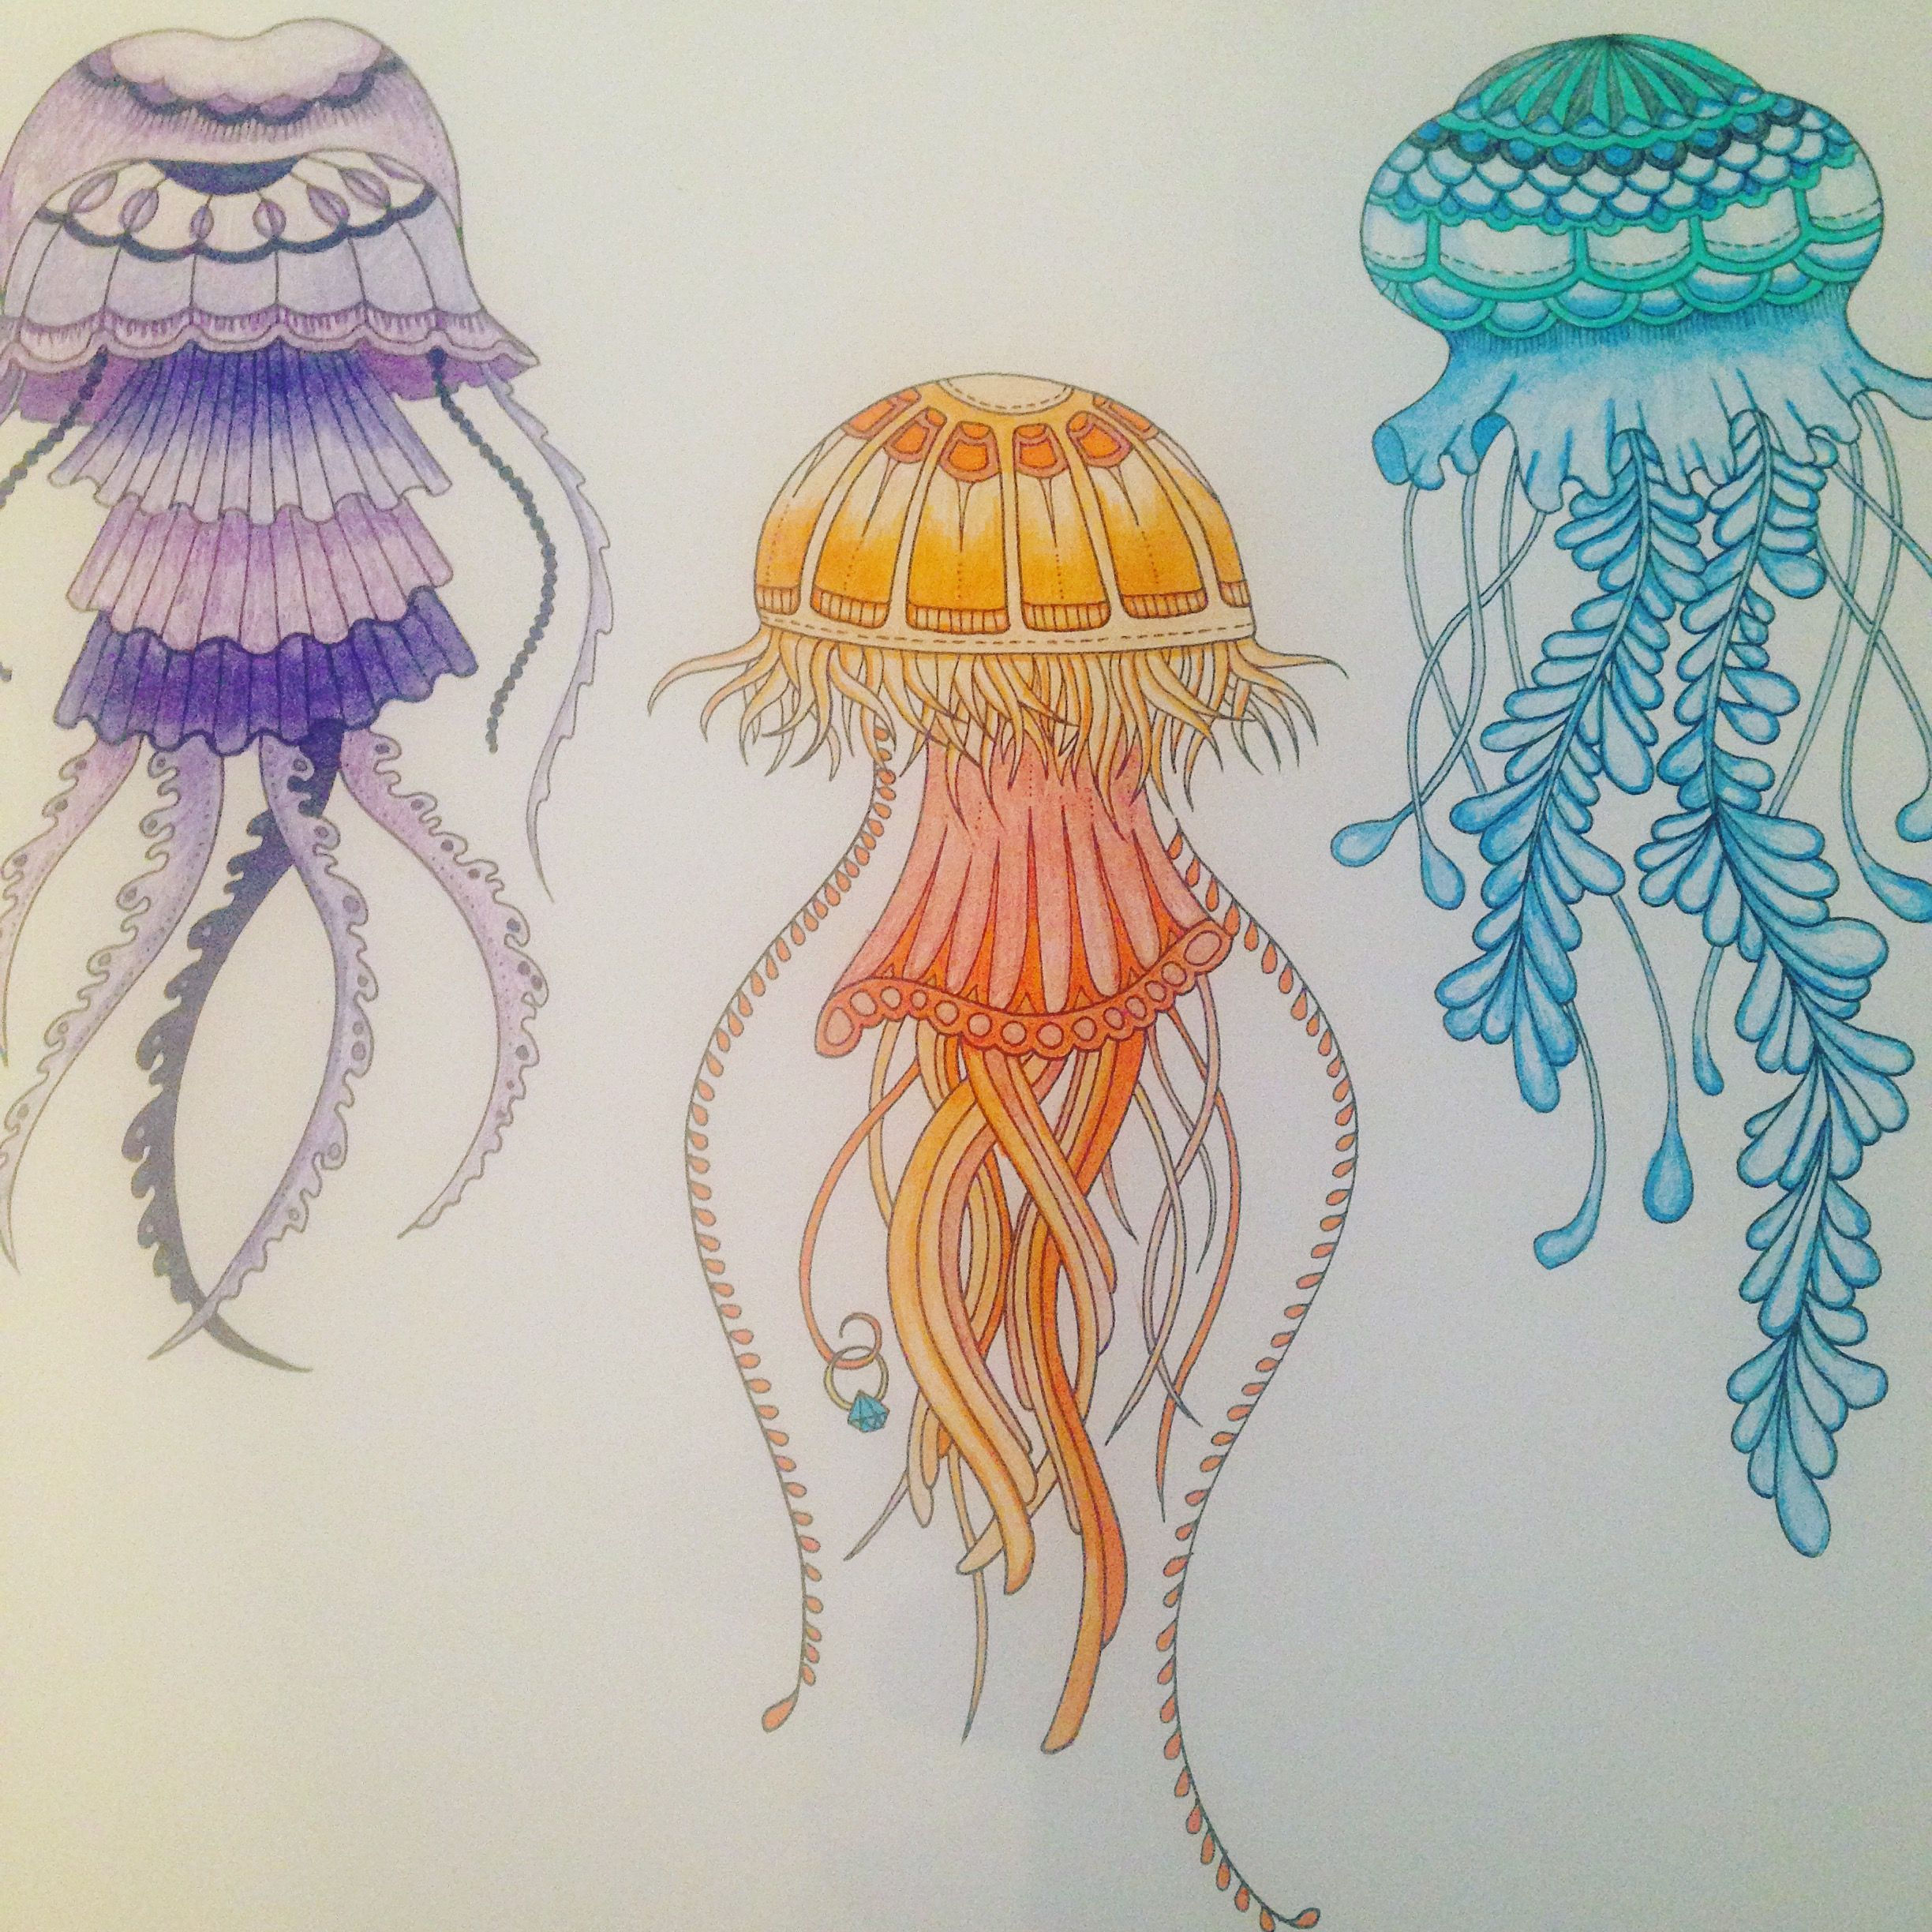 Lost Ocean Coloring Book By Johanna Basford Jellyfish In Colored Pencil Lost Ocean Coloring Book Lost Ocean Johanna Basford Lost Ocean